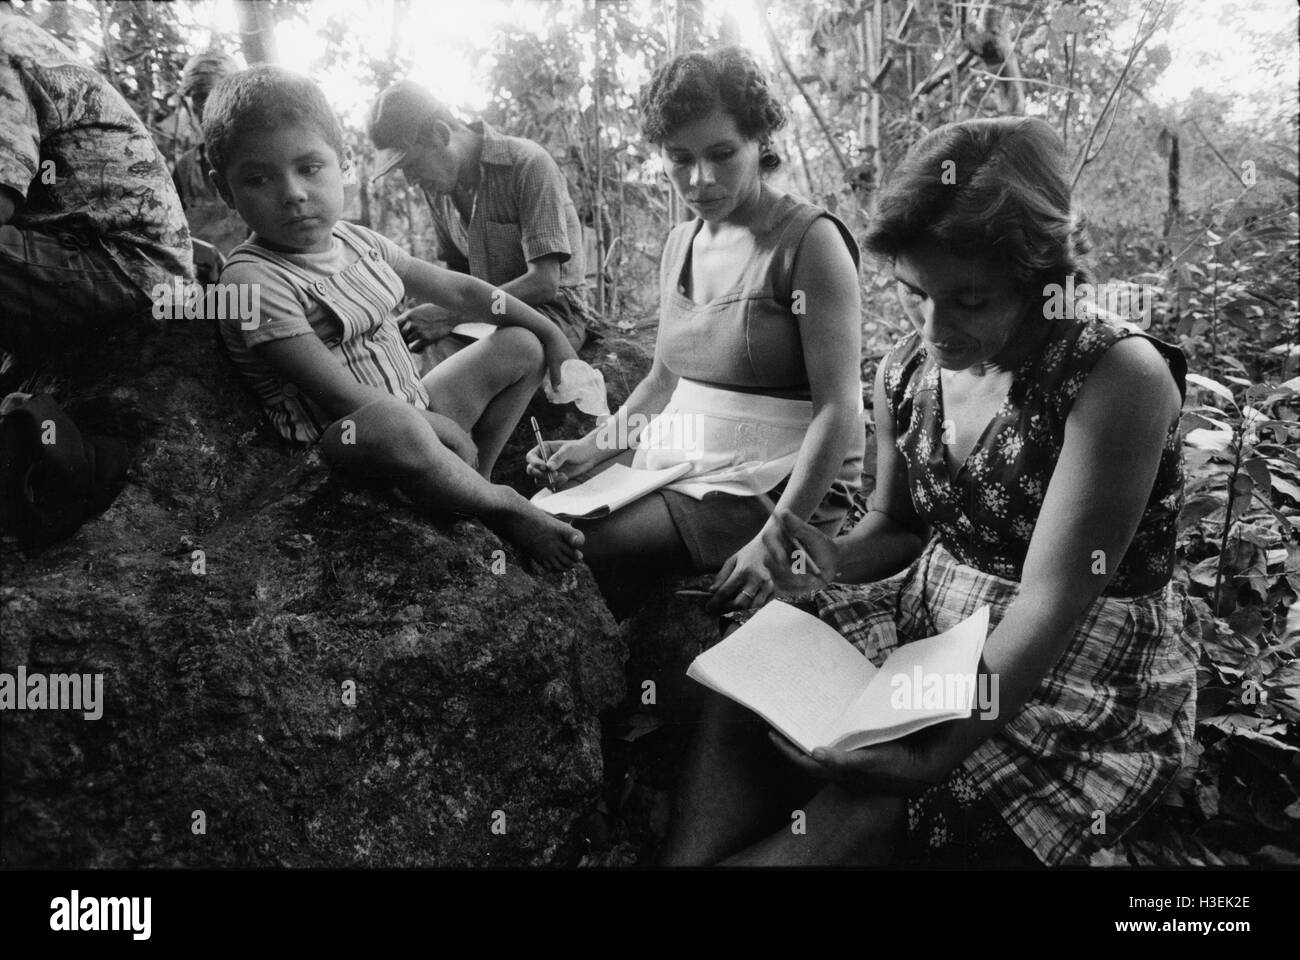 GUAZAPA, EL SALVADOR, FEB 1984: - Within the FPL Guerrilla's Zones of Control - an adult literacy class held - Stock Image